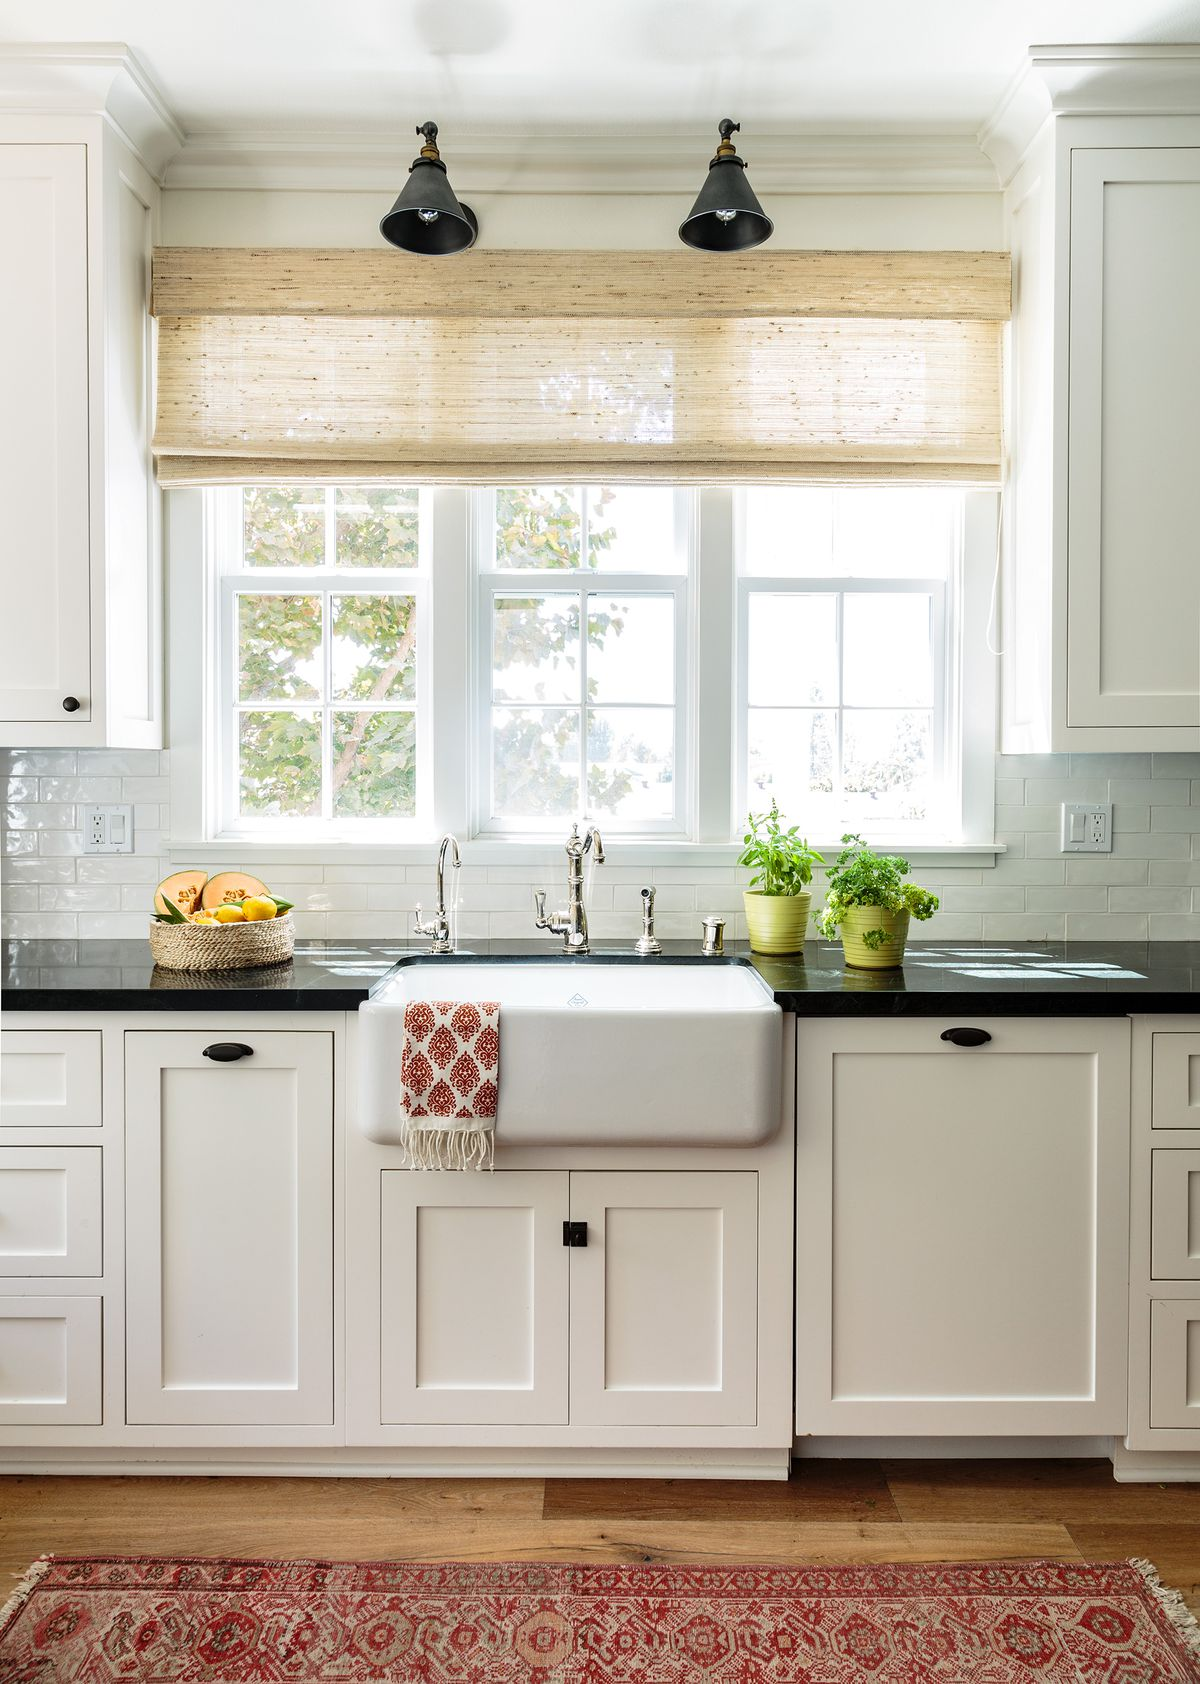 Cape Cod-style house remodel in Los Angeles, CA, kitchen sink